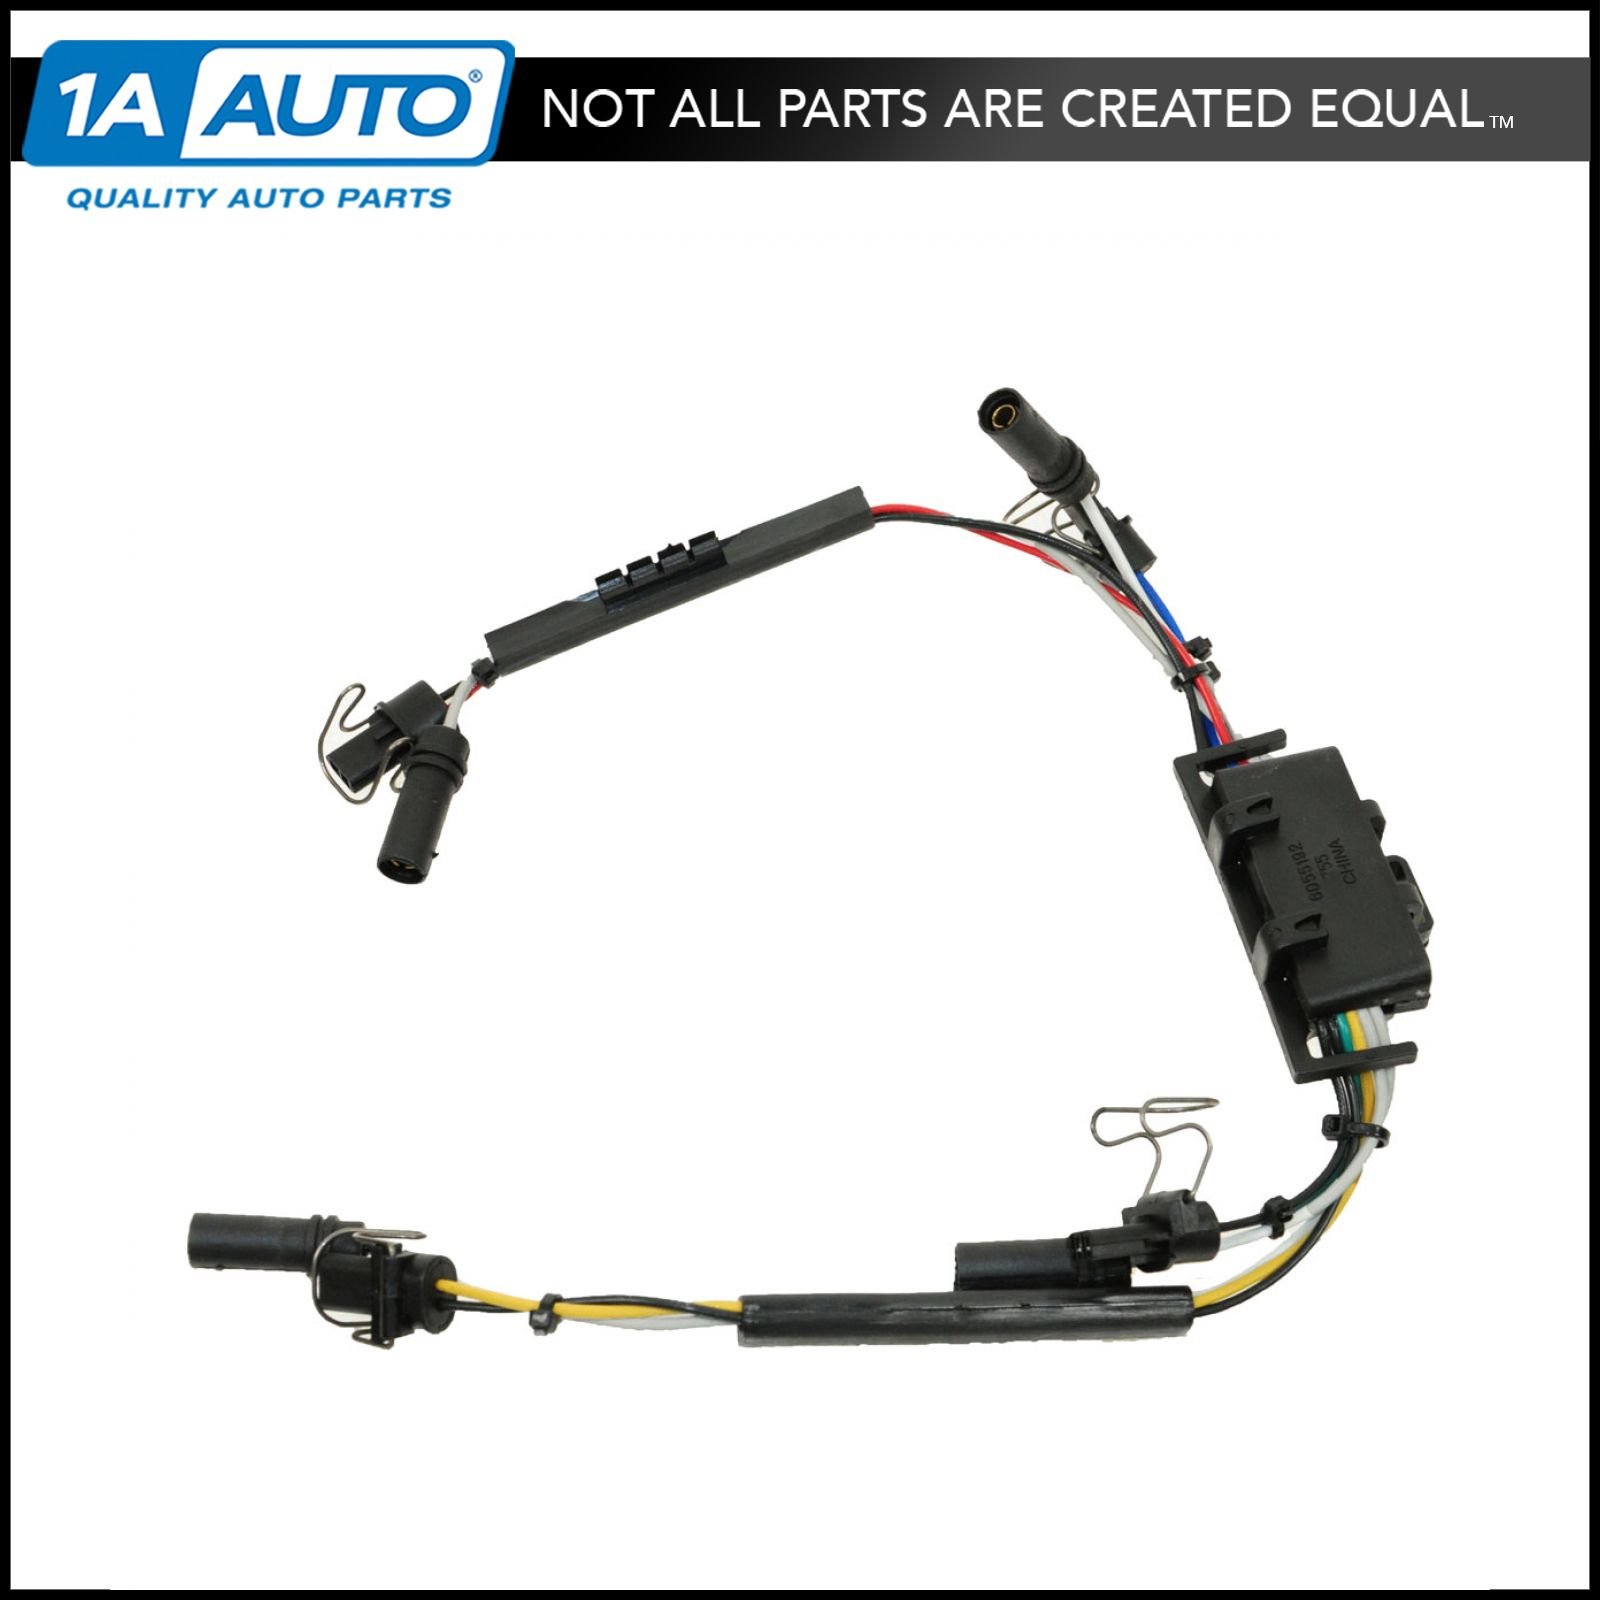 hight resolution of 1999 03 ford pickup truck fuel injector and glow plug harness for models with v8